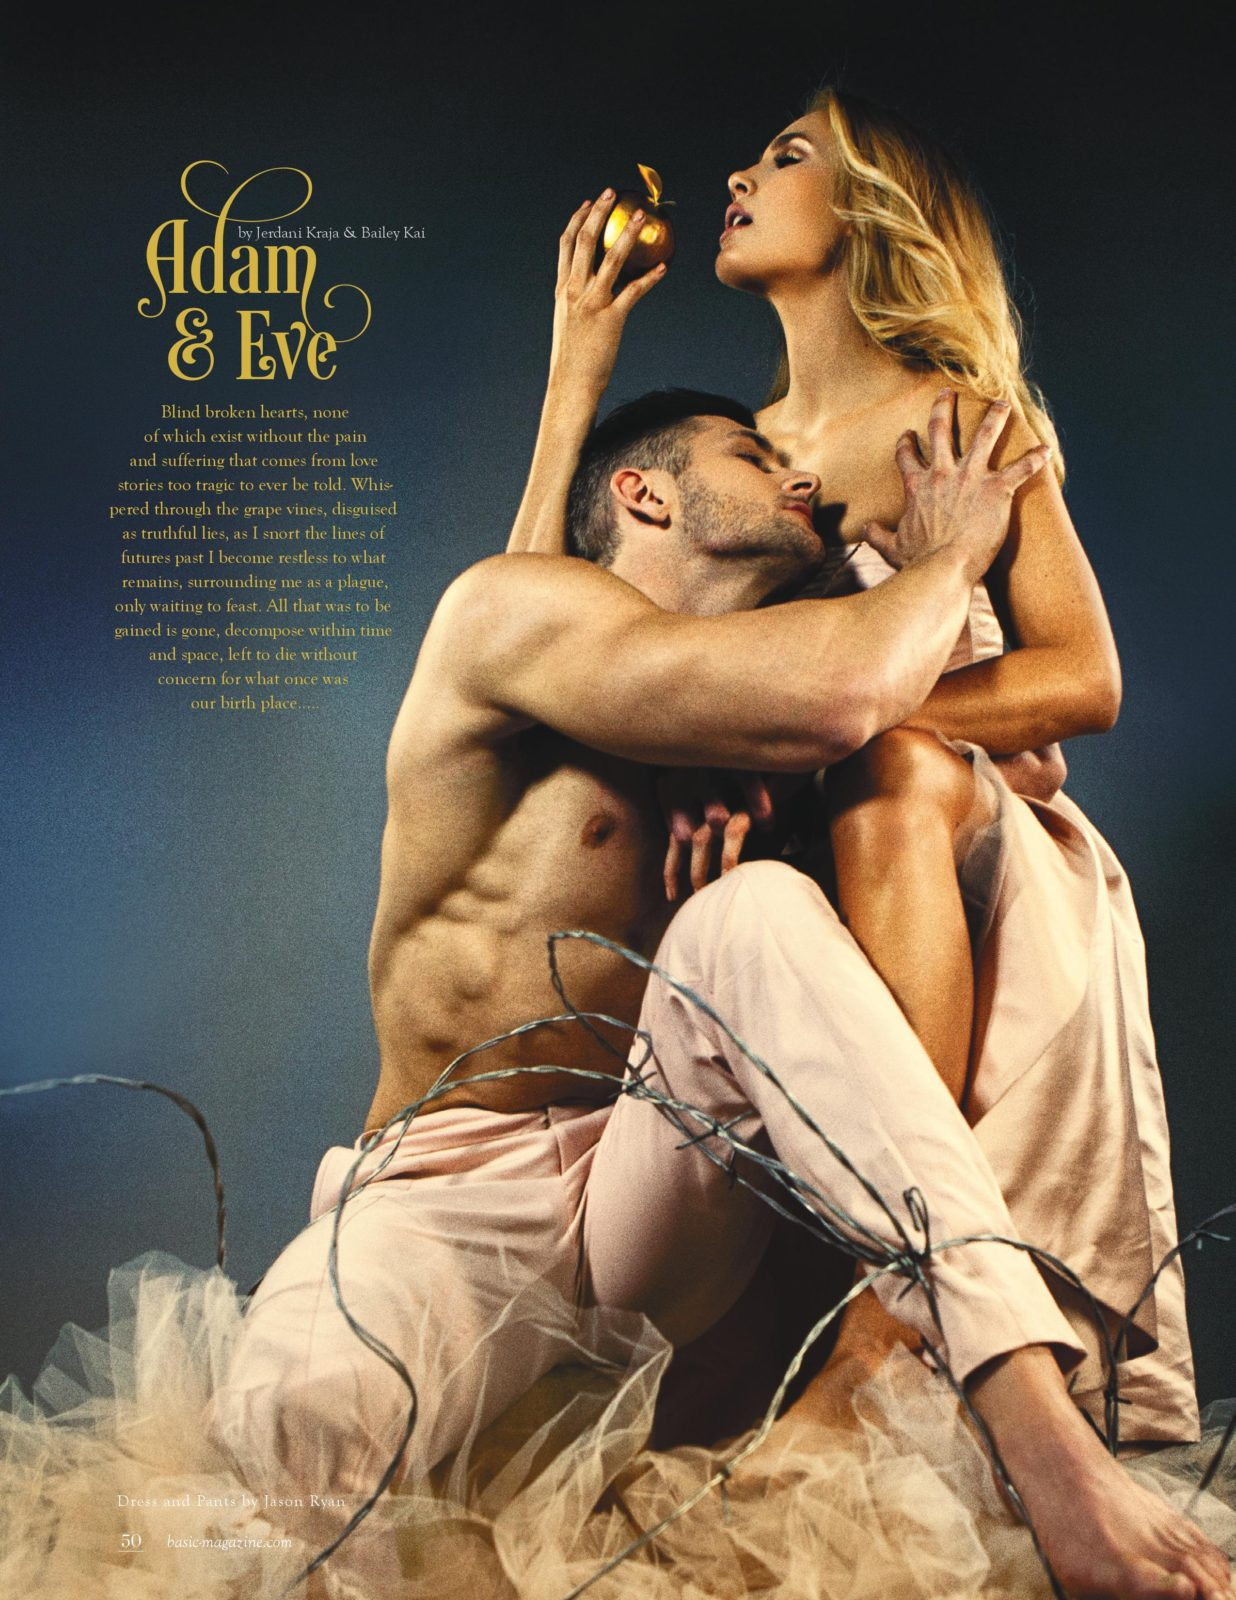 basic magazine love stories adam and eve